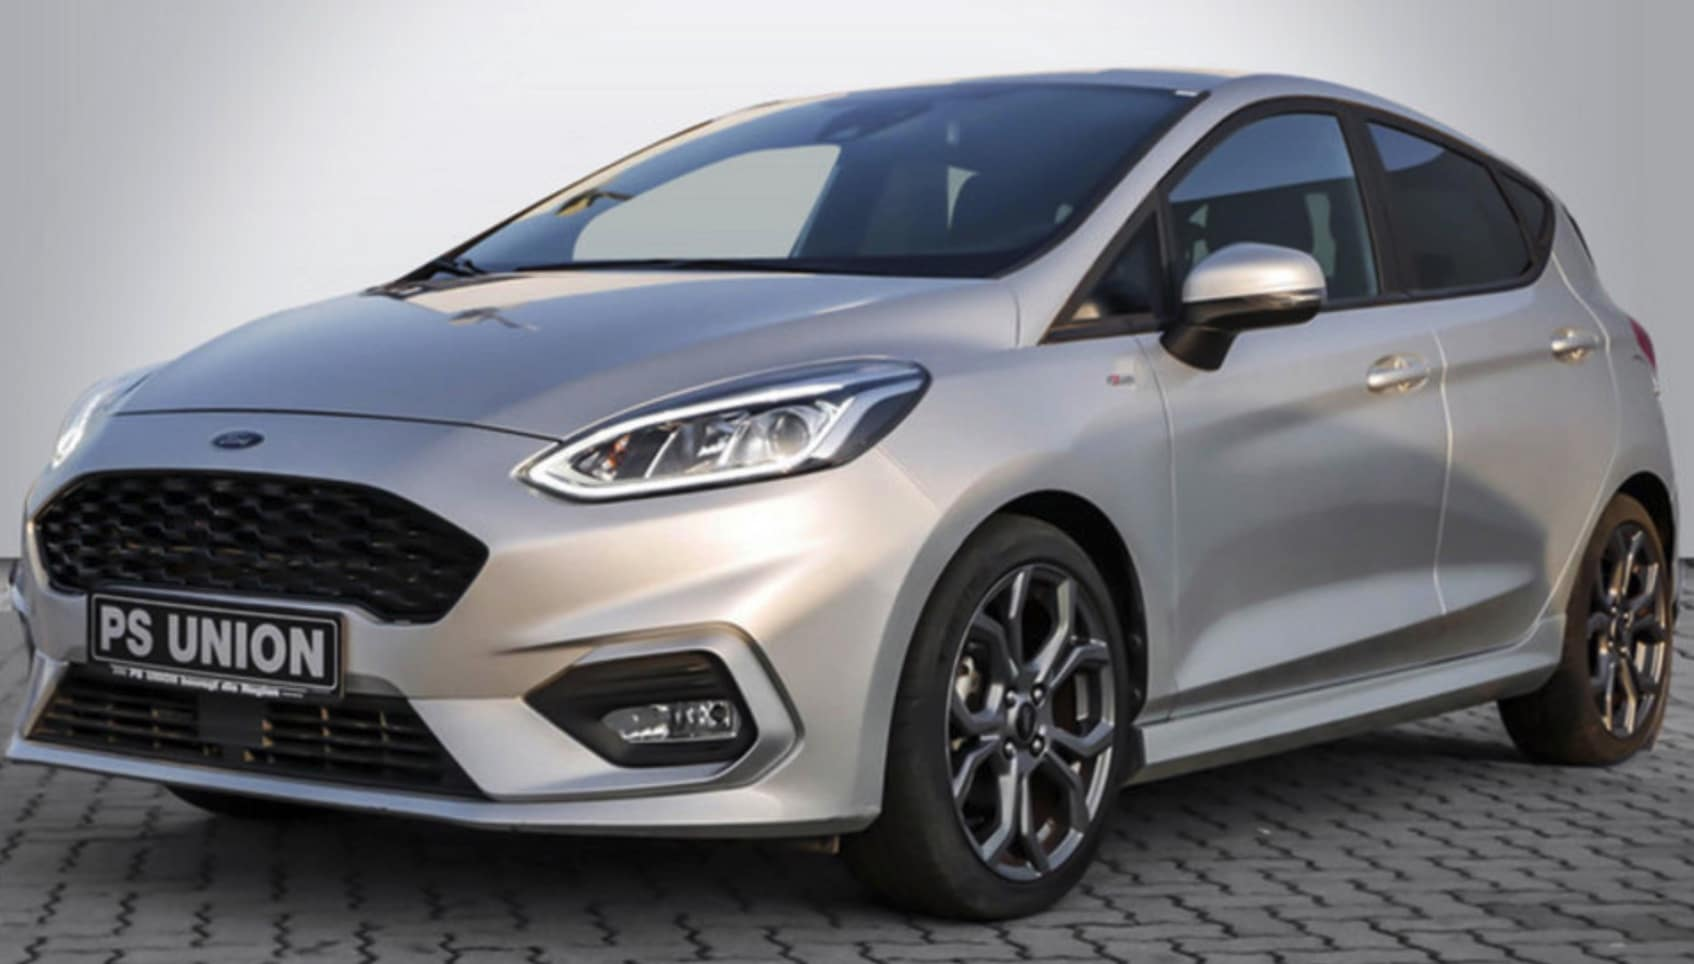 Ford Fiesta 1.0 ST Line 140PS fuer 123 mtl.